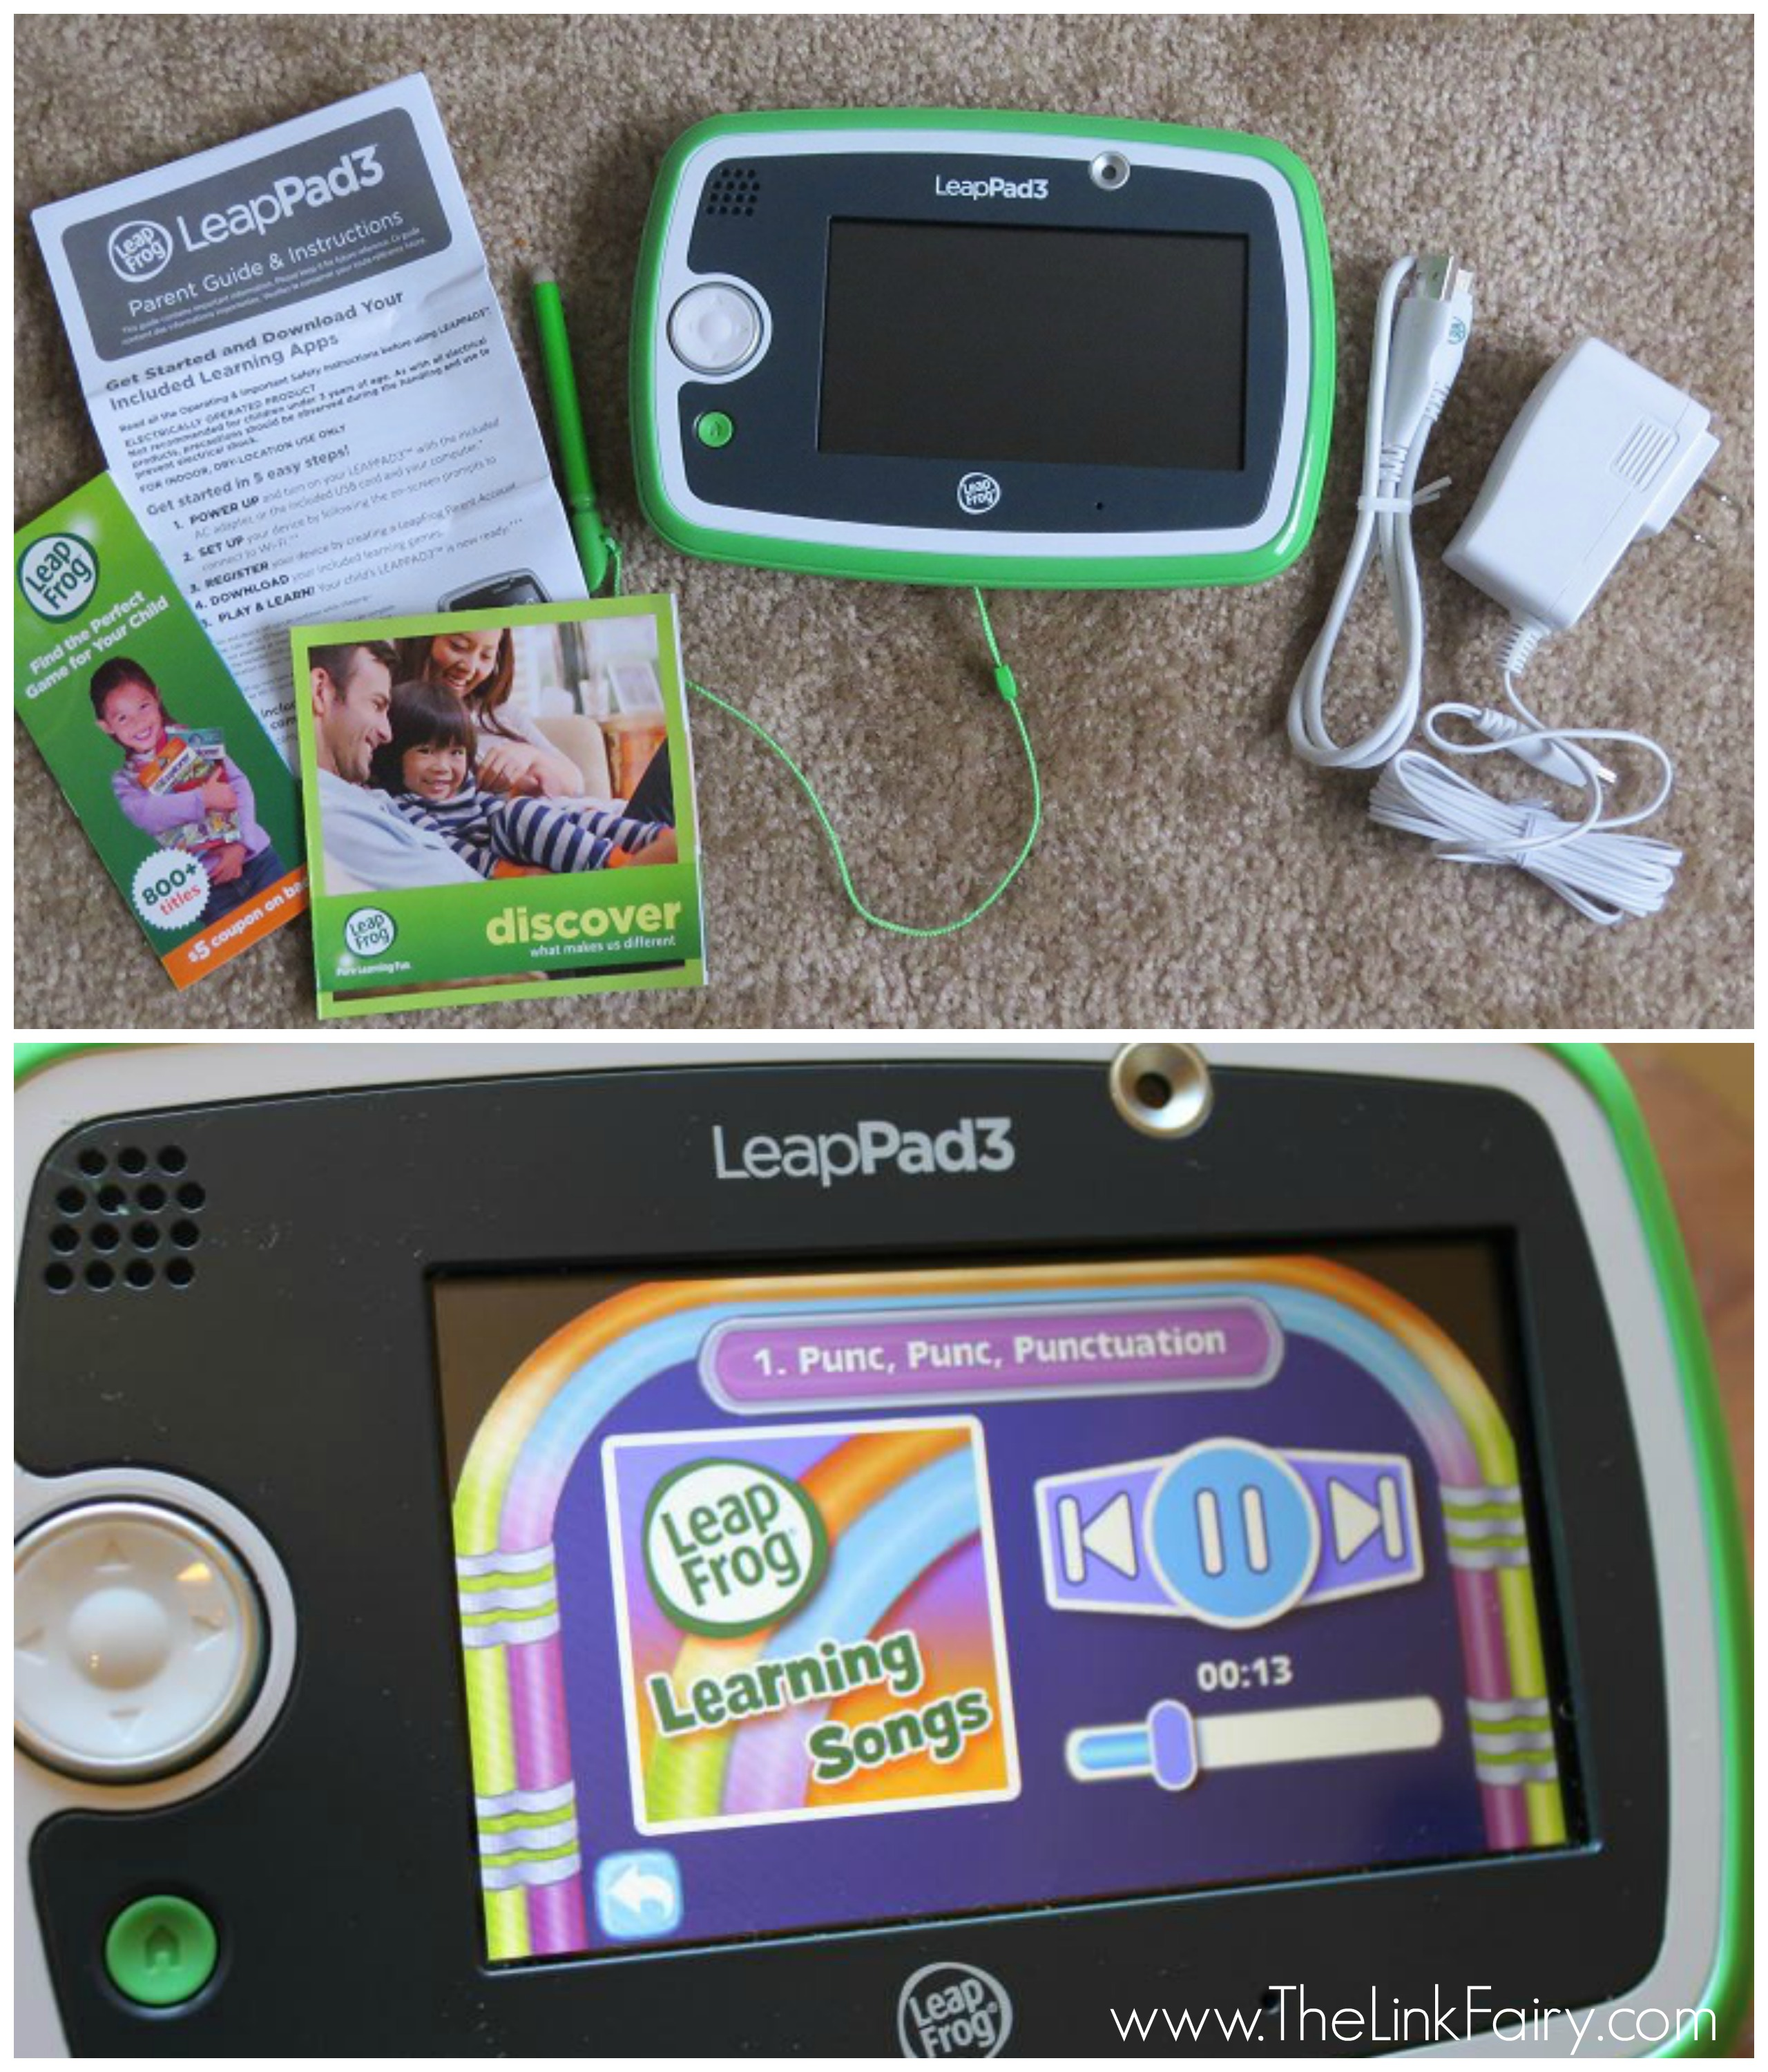 A new way to learn with LeapFrog's new LeapPad3